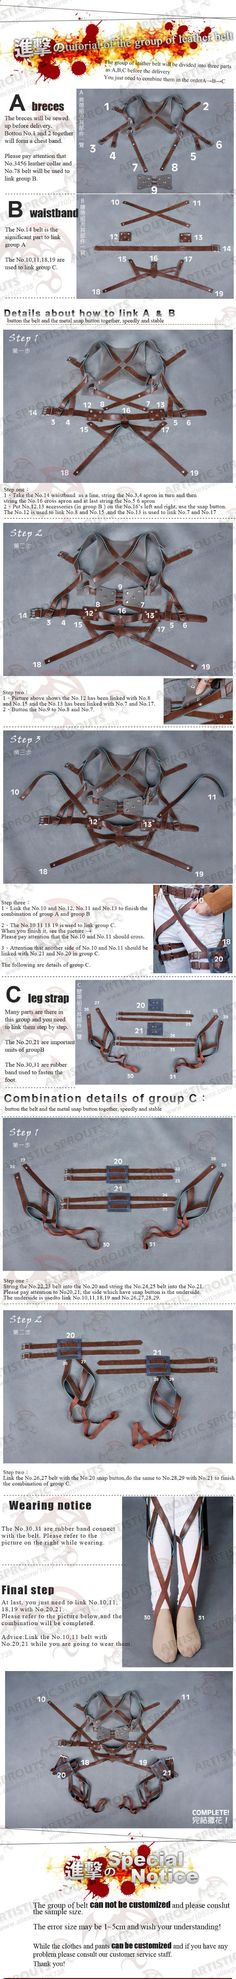 Shingeki no Kyojin Attack on Titan Scouting Legion Survey corps Cosplay Costume Eren Jaeger Levi RivailleBelt System-in Costumes from Apparel & Accessories on Aliexpress.com | Alibaba Group